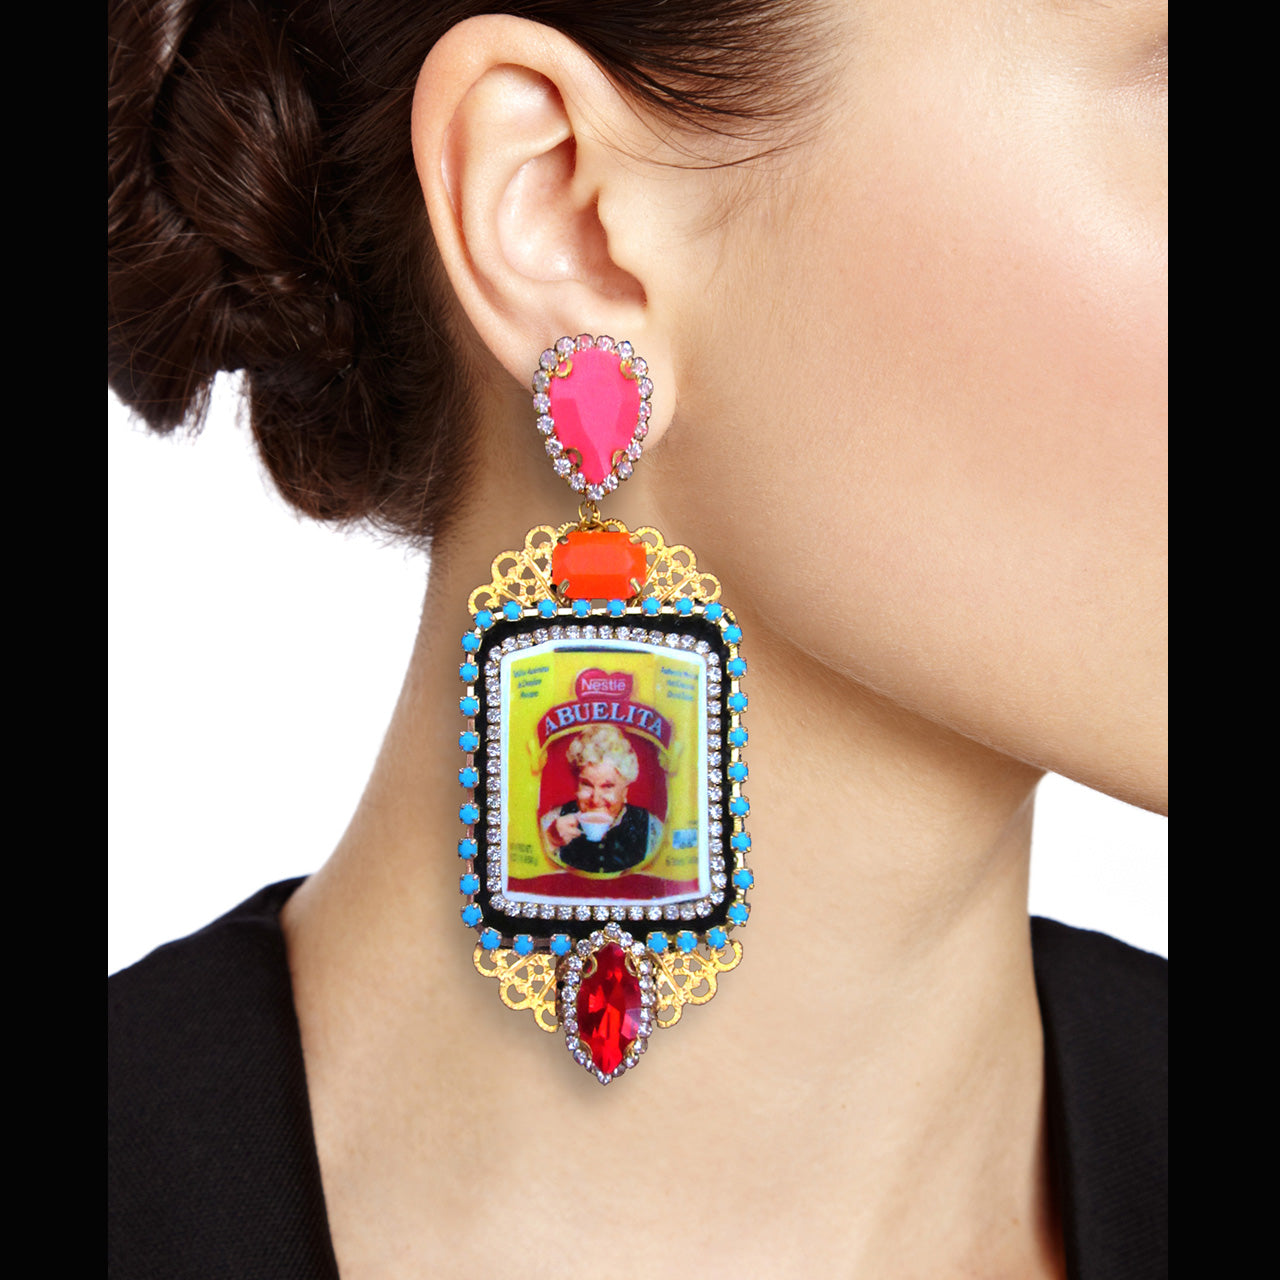 mouchkine jewelry earrings, an abuelita retro chic picture with red, pink and orange crystals. A unique style with a haute couture tone.